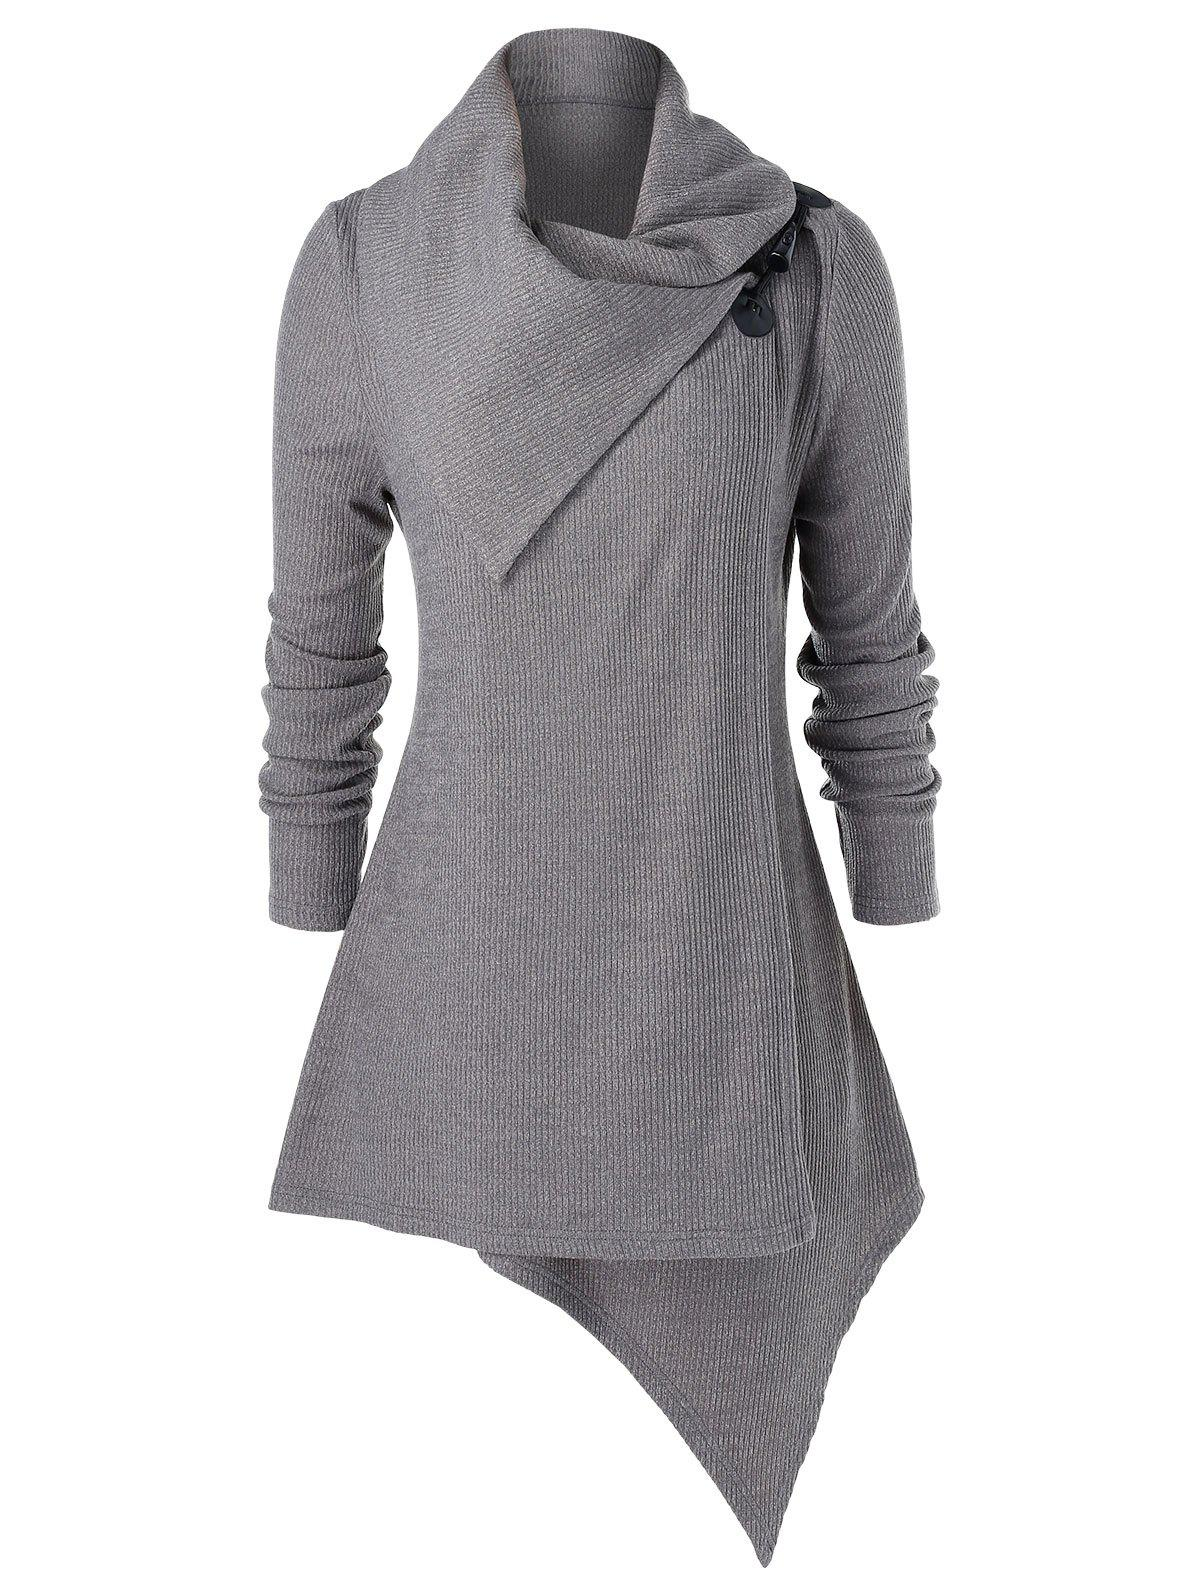 Plus Size Buckle Asymmetrical Knitwear - GRAY L